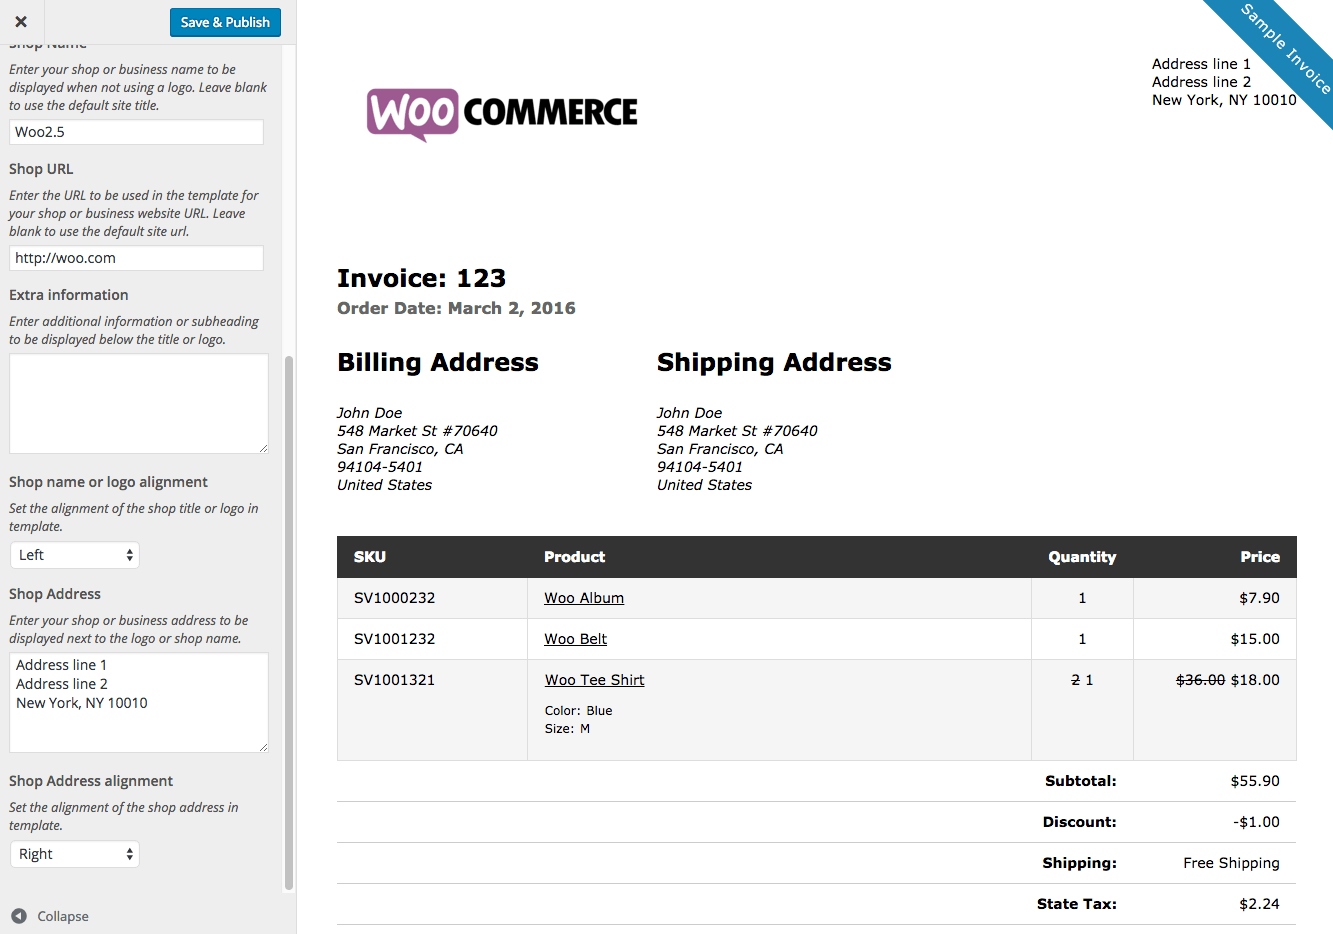 Usdgus  Stunning Print Invoices Amp Packing Lists  Woocommerce With Remarkable Woocommerce Print Invoices  Packing Lists Customizer With Cool Ultimate Invoice Finance Also Invoice Sample Download In Addition Free Printable Invoice Forms Billing And Recurring Invoicing As Well As Payment Against Proforma Invoice Additionally Free Invoicing And Accounting Software From Woocommercecom With Usdgus  Remarkable Print Invoices Amp Packing Lists  Woocommerce With Cool Woocommerce Print Invoices  Packing Lists Customizer And Stunning Ultimate Invoice Finance Also Invoice Sample Download In Addition Free Printable Invoice Forms Billing From Woocommercecom